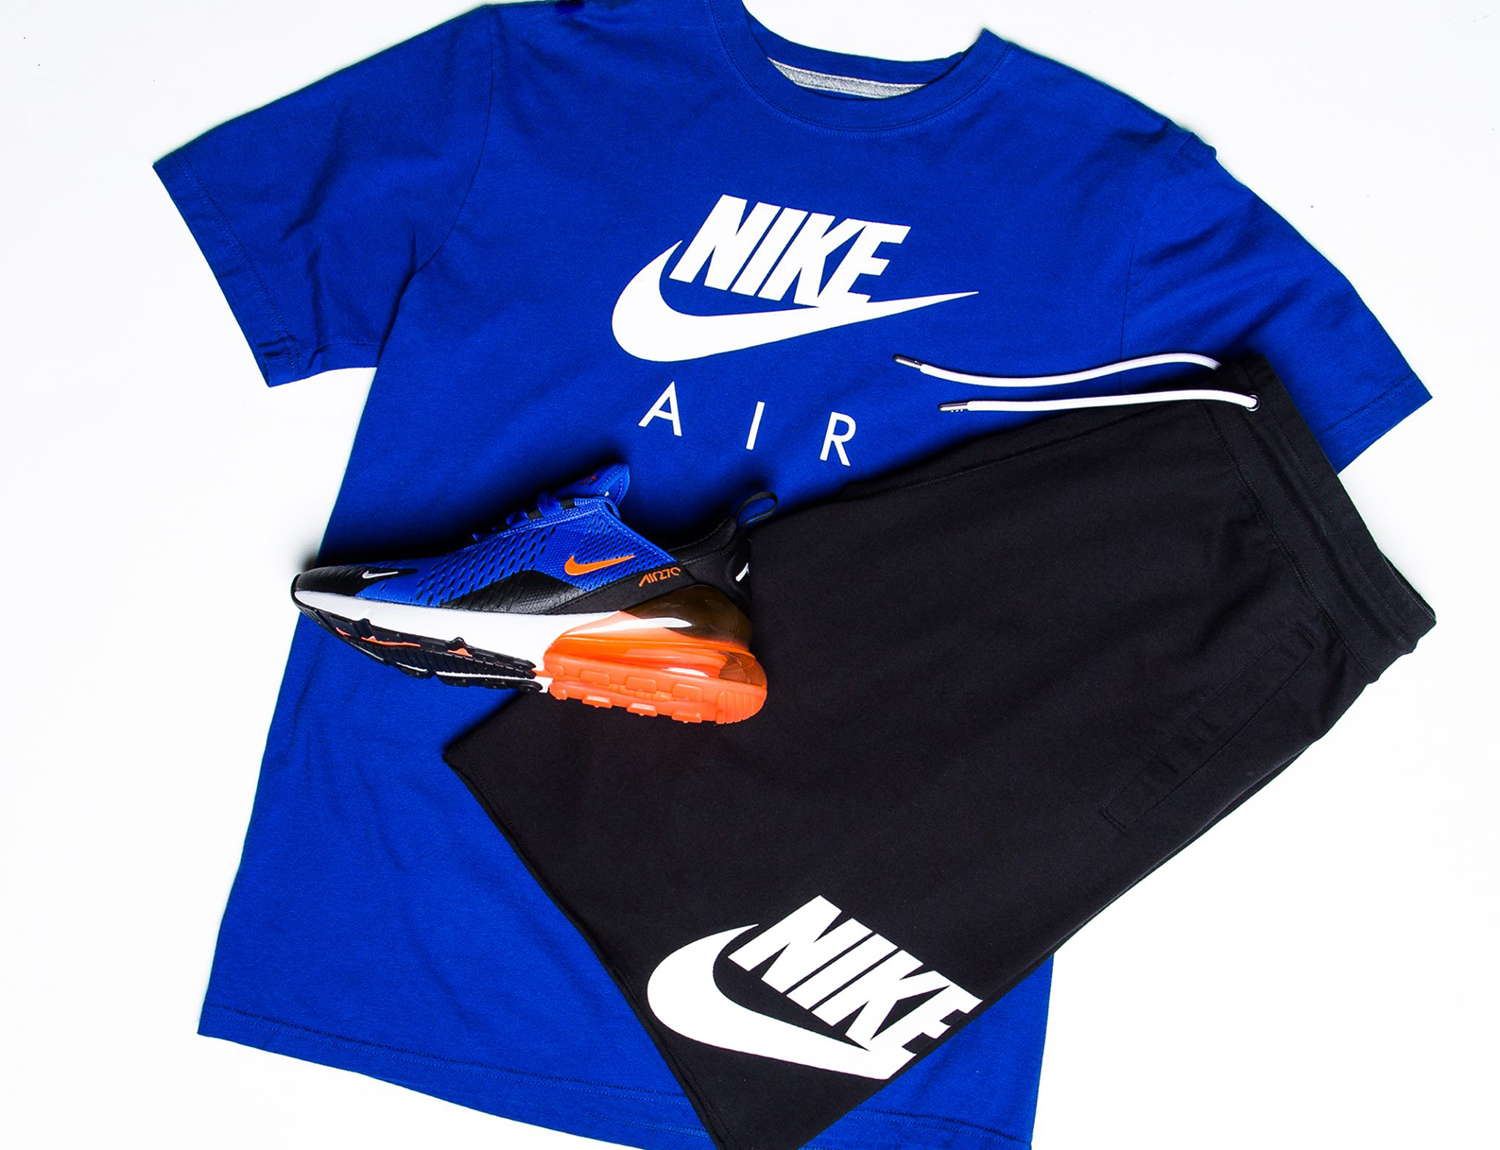 Nike Air Racer Blue Crimson Shoes Shirt Shorts Match ...